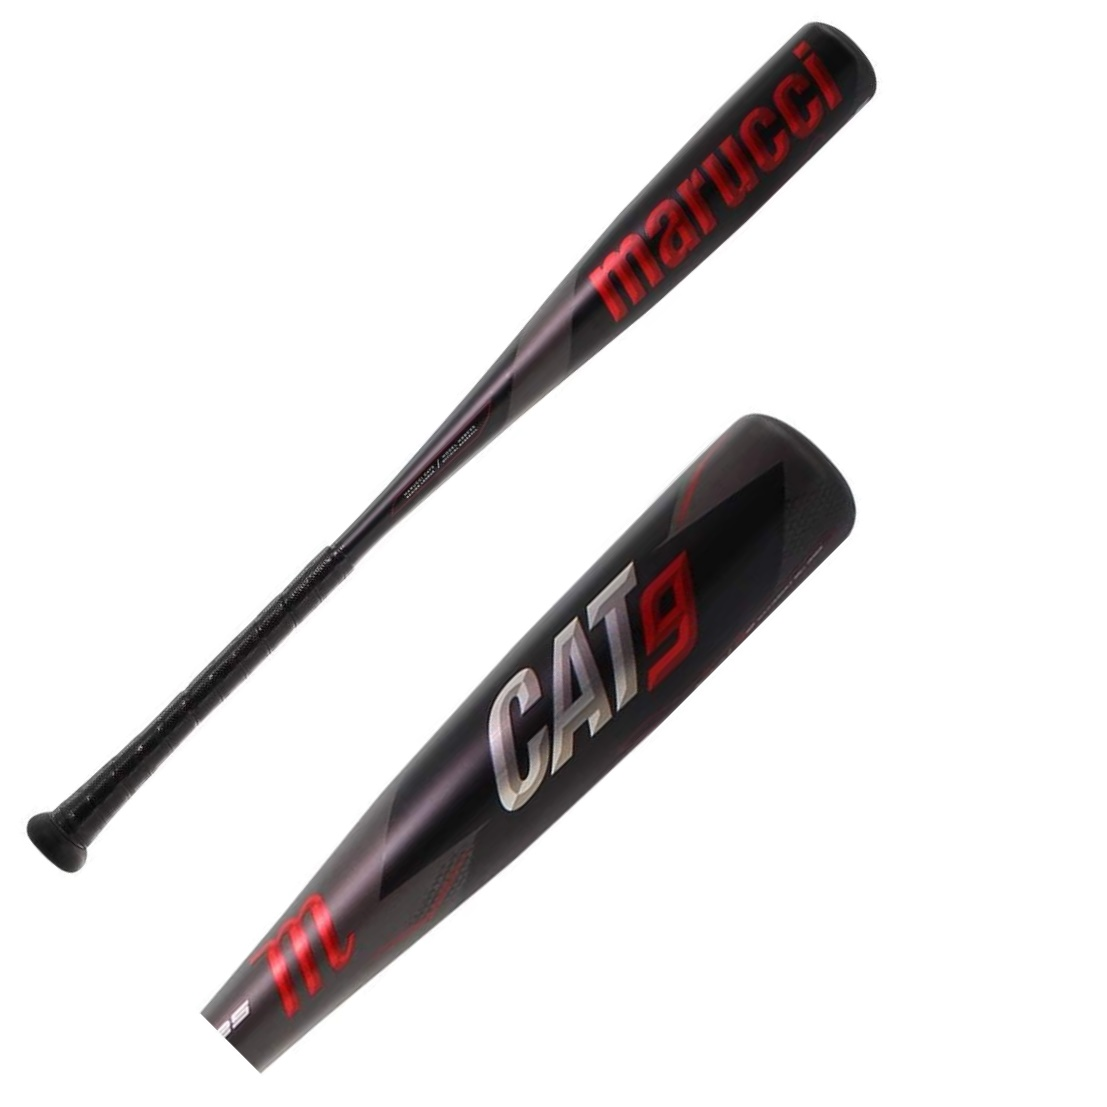 marucci-cat-9-5-usssa-baseball-bat-30-in-25-oz MSBC95-3025 Marucci  Utilizing a three-stage thermal treatment process our new AZR alloy offers